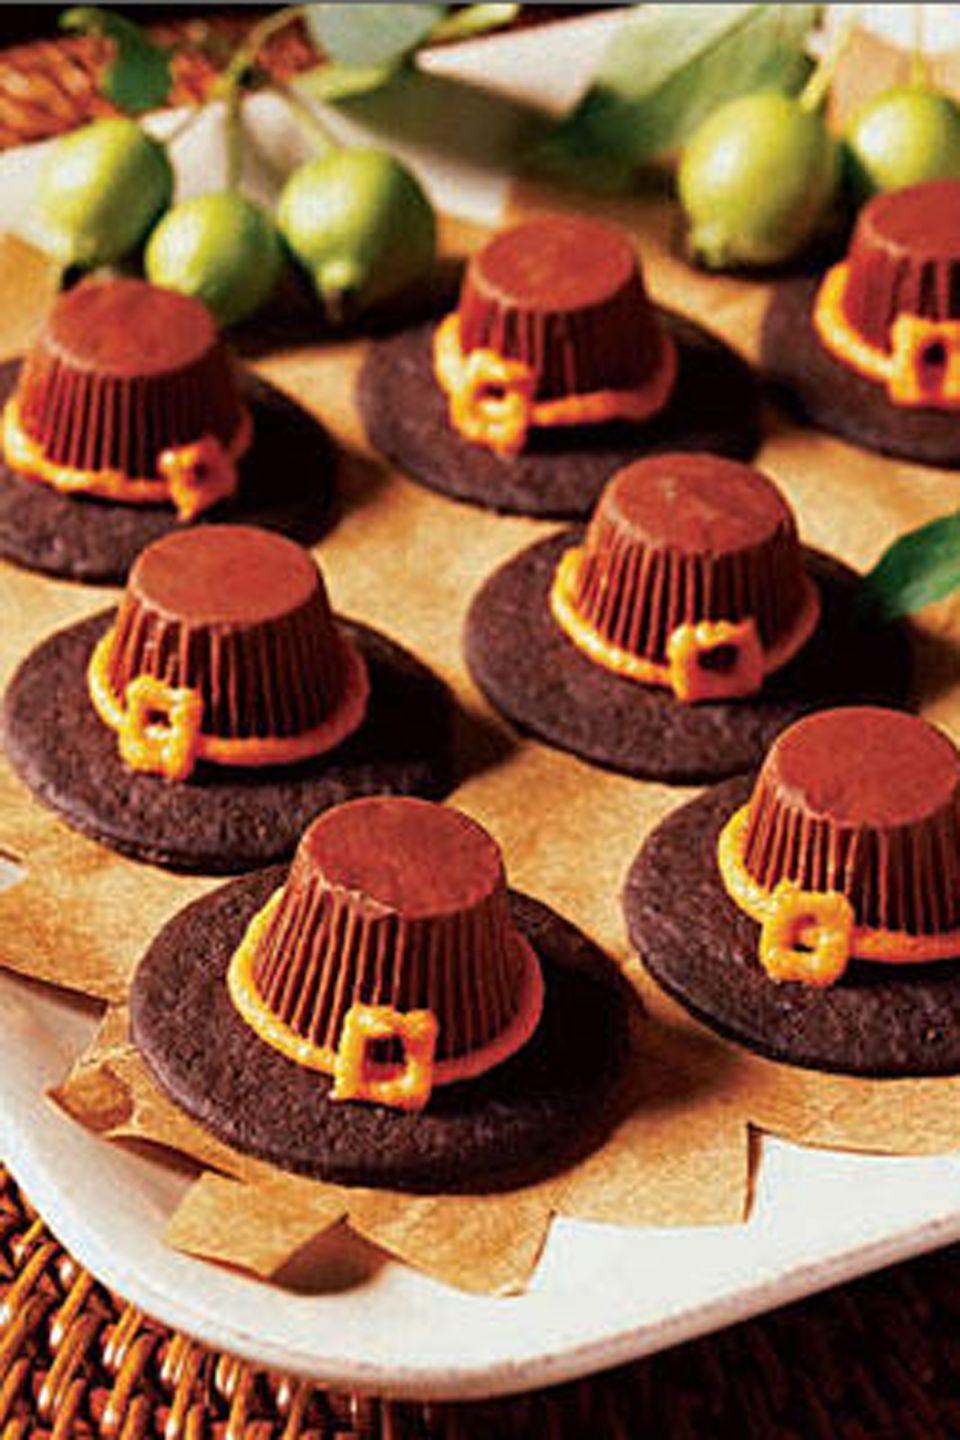 "<p>Peanut butter cups and chocolate wafer cookies are the secret to making these <a href=""https://www.womansday.com/food-recipes/food-drinks/g1966/thanksgiving-cupcakes/"" rel=""nofollow noopener"" target=""_blank"" data-ylk=""slk:adorable treats"" class=""link rapid-noclick-resp"">adorable treats</a>.</p><p><strong><em><a href=""https://www.womansday.com/food-recipes/food-drinks/recipes/a10213/pilgrim-hat-cookies-121639/"" rel=""nofollow noopener"" target=""_blank"" data-ylk=""slk:Get the Pilgrim Hat Cookies recipe."" class=""link rapid-noclick-resp"">Get the Pilgrim Hat Cookies recipe. </a></em></strong></p><p> _________________________________________________________<br><br><em>Want more recipes? </em><a href=""https://subscribe.hearstmags.com/subscribe/womansday/253396?source=wdy_edit_article"" rel=""nofollow noopener"" target=""_blank"" data-ylk=""slk:Subscribe to Woman's Day"" class=""link rapid-noclick-resp""><em>Subscribe to Woman's Day</em></a><em> today and get </em><strong><em>73% off your first 12 issues</em></strong><em>. And while you're at it, </em><a href=""https://link.womansday.com/join/3o9/wdy-newsletter"" rel=""nofollow noopener"" target=""_blank"" data-ylk=""slk:sign up for our FREE newsletter"" class=""link rapid-noclick-resp""><em>sign up for our FREE newsletter</em></a><em> for even more of the Woman's Day content you want.</em><br><br><br></p>"